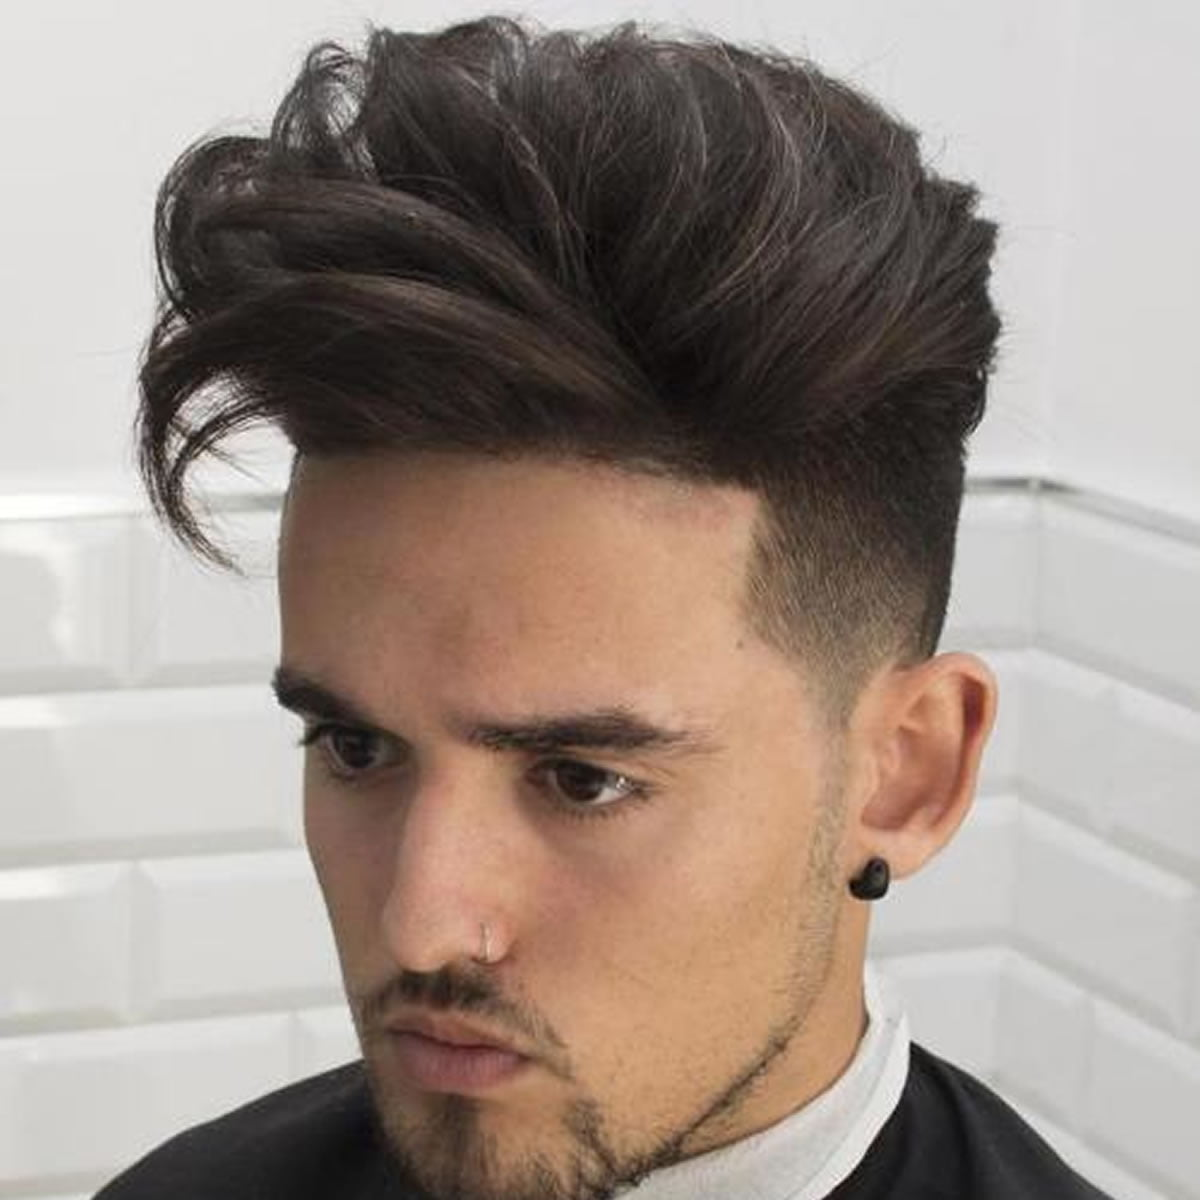 25 Popular Haircuts For Men 2018: 2018 Short Haircuts For Men